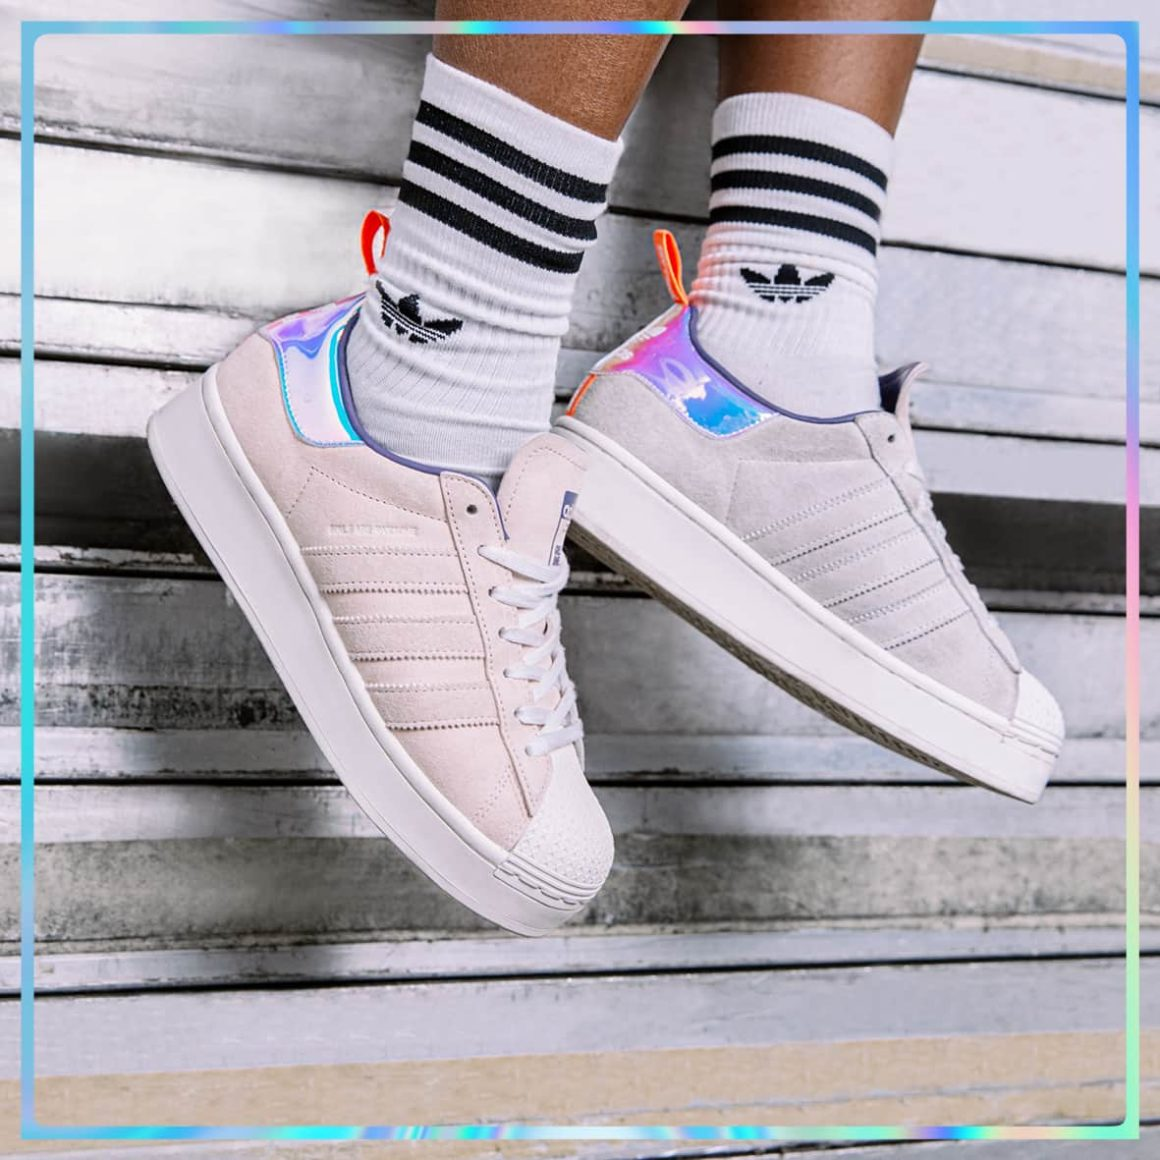 adidasxGirlsAreAwesome-Kollektion-superstar